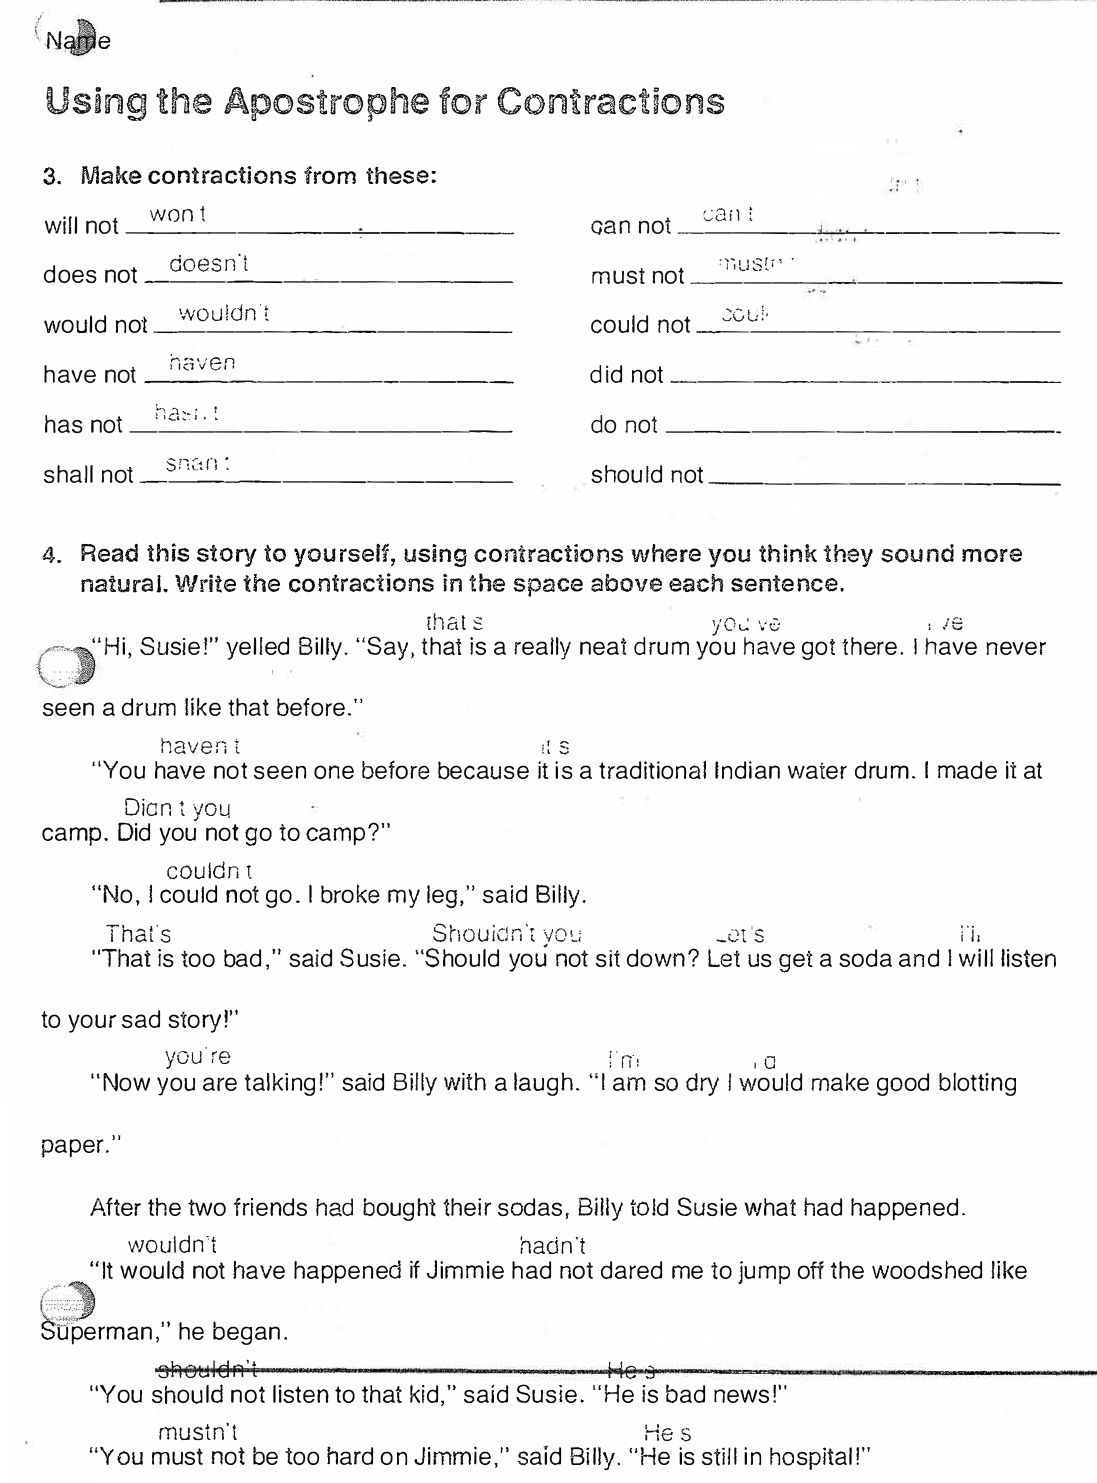 English Assignments Using Contractions Page 2 Answers English Lessons Lesson Reading